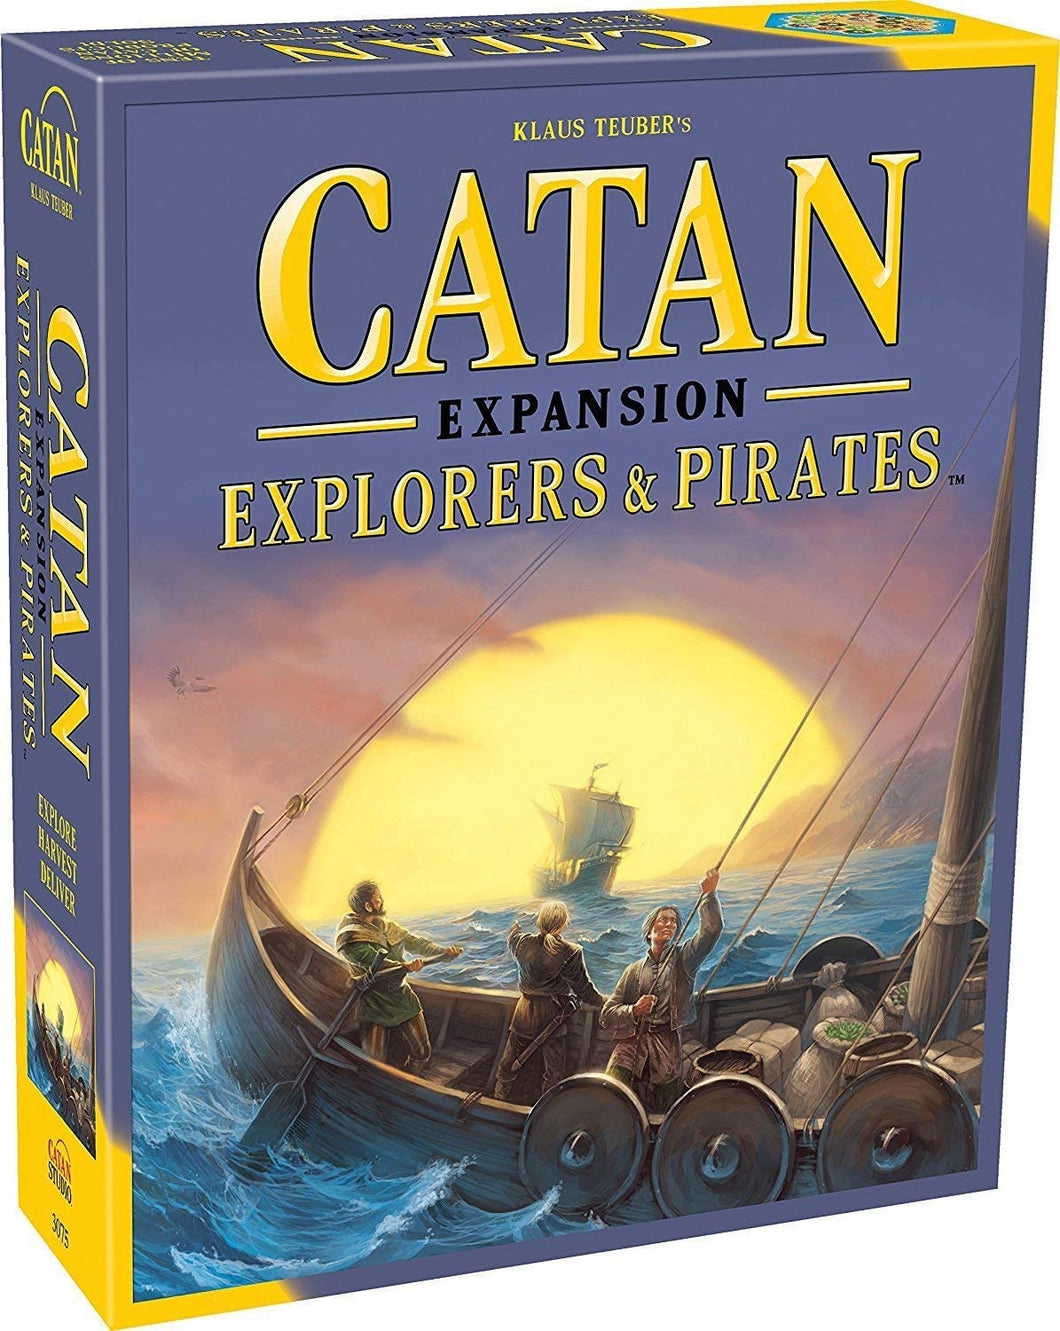 Catan - Explorers & Pirates Expansion - Roll2Learn